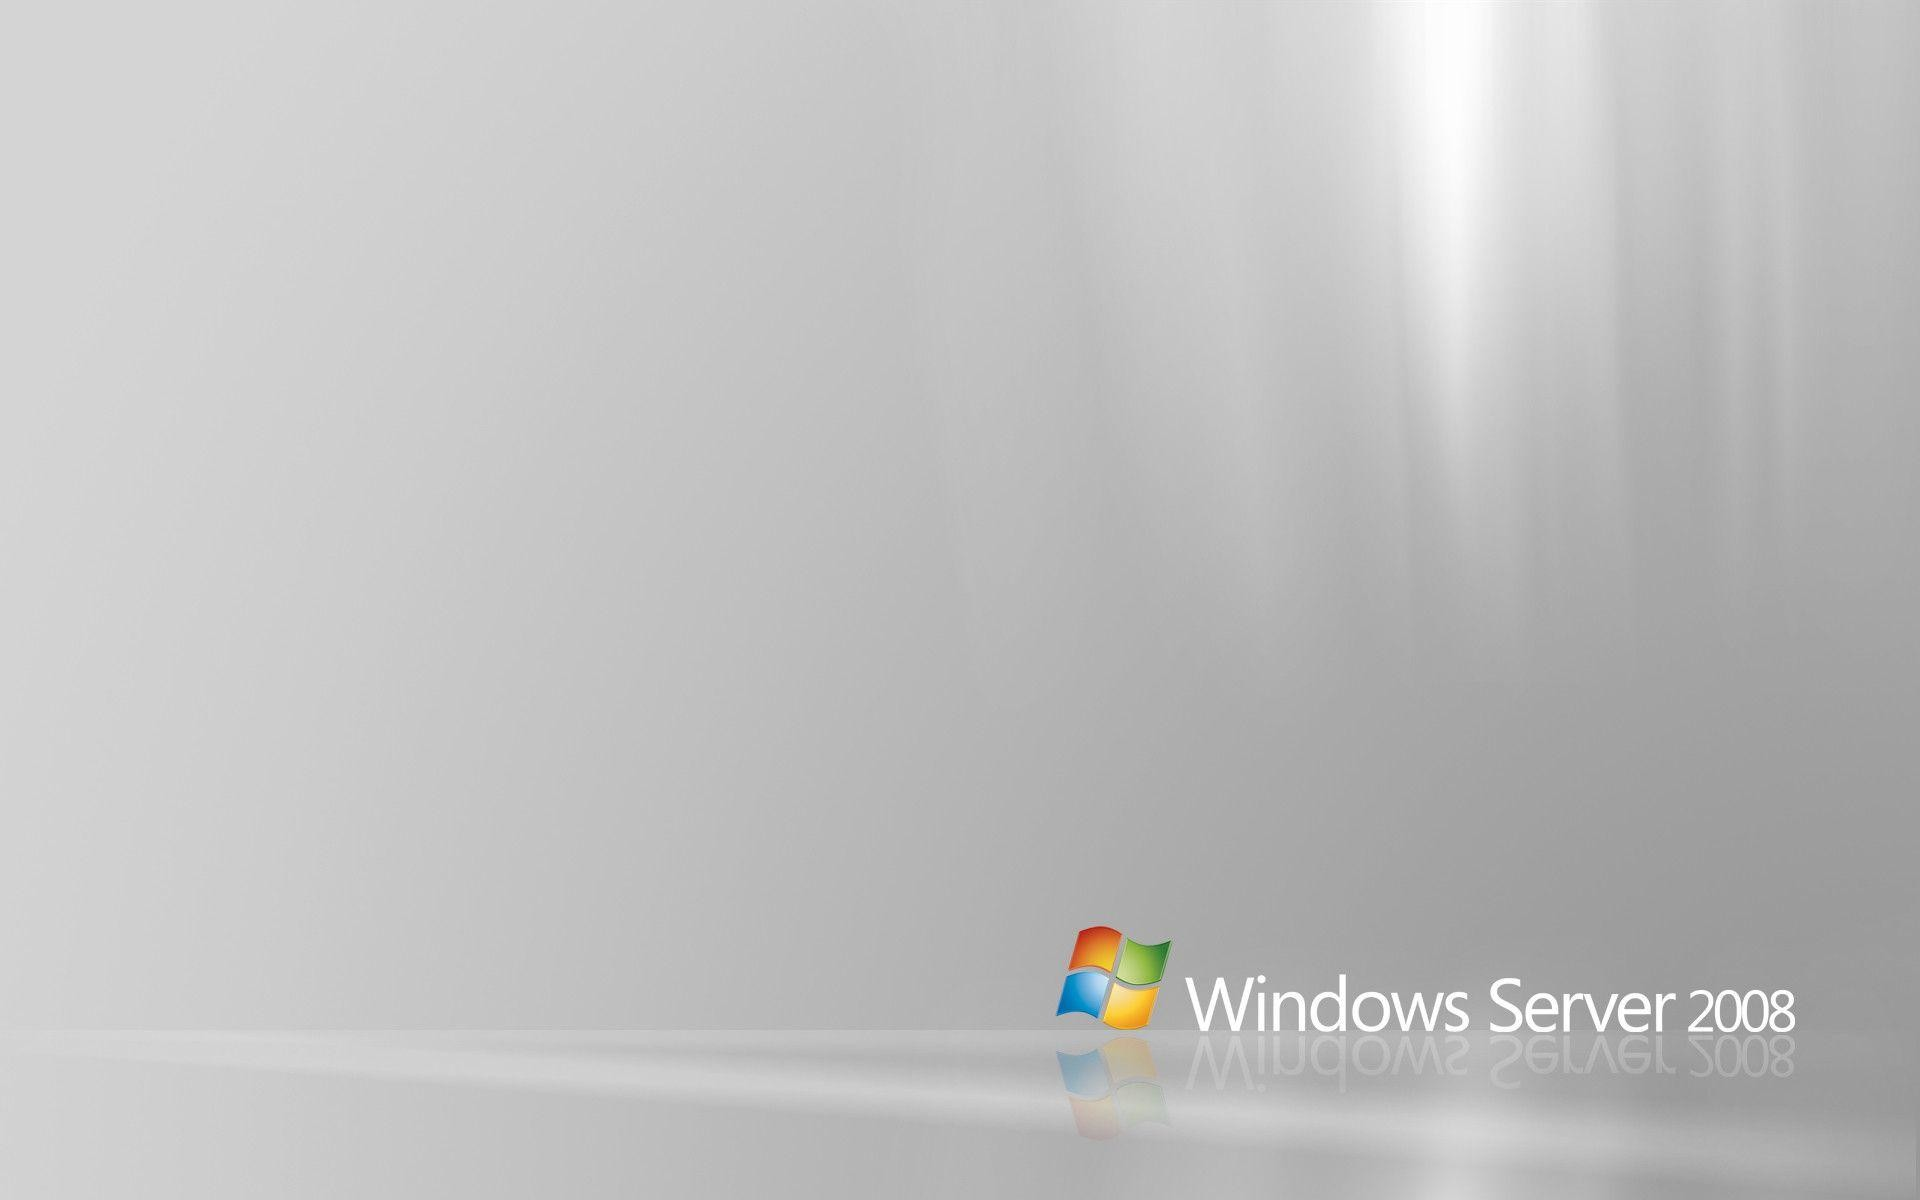 windows server wallpaper: Windows Server Wallpaper (69+ Images